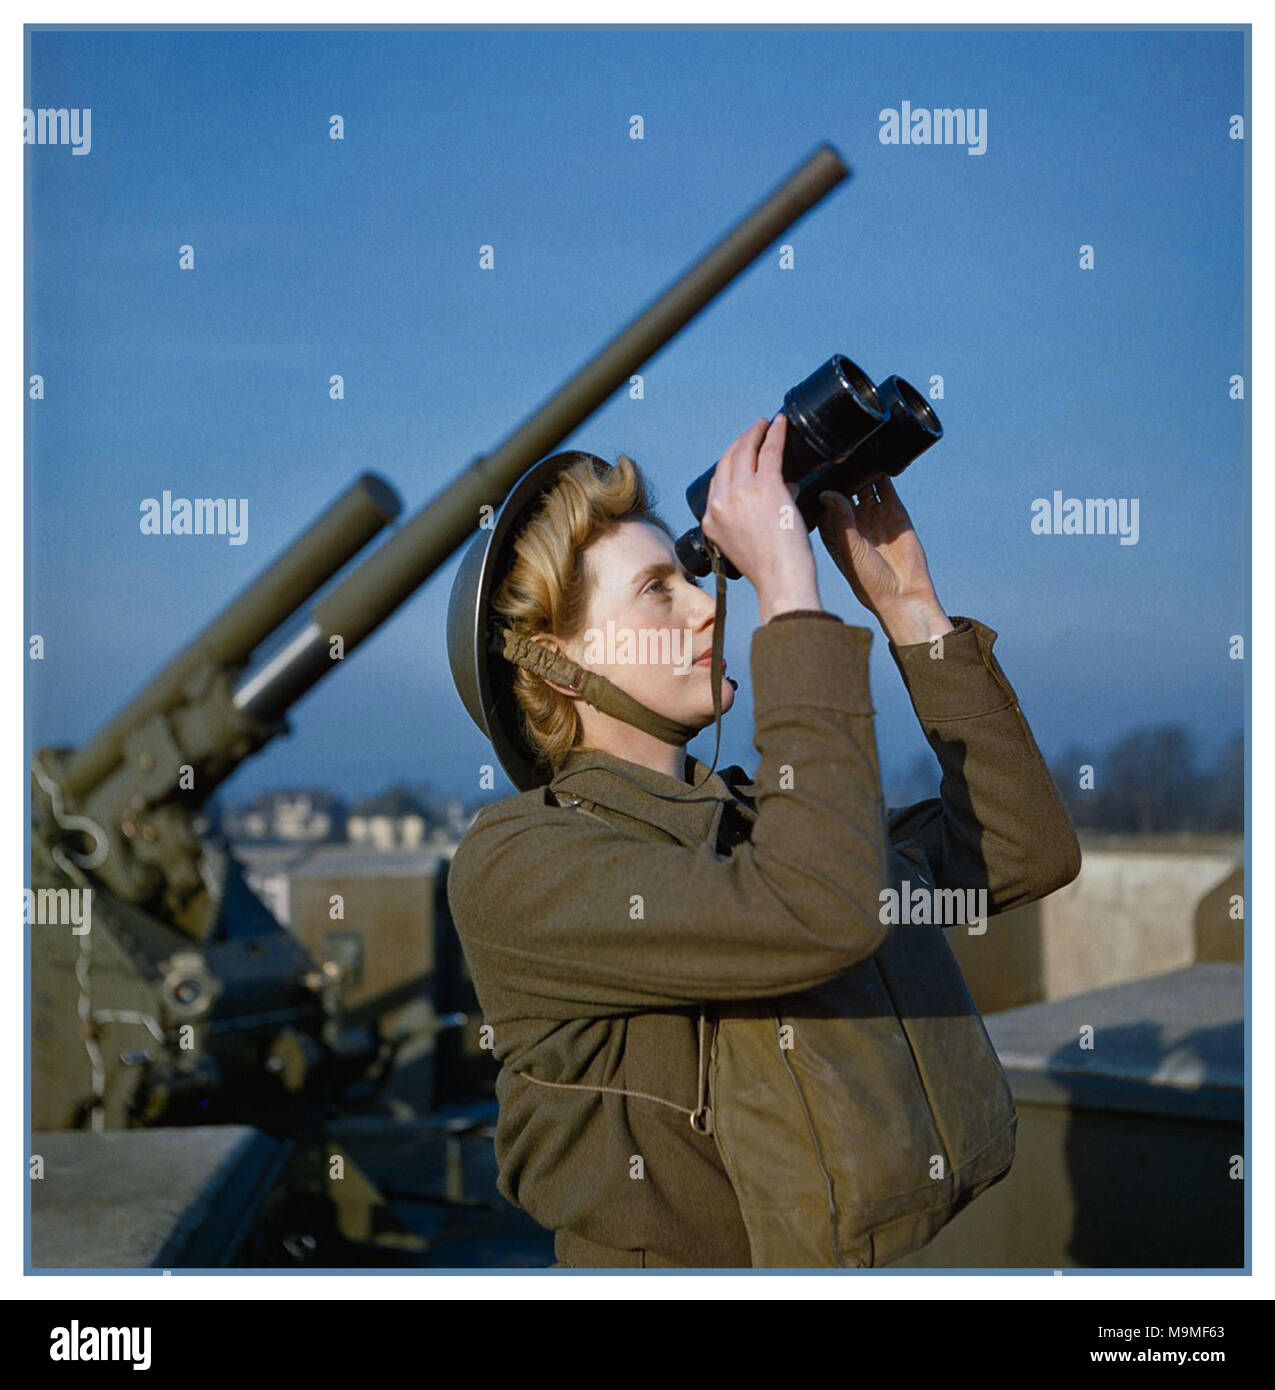 1940's WW2 December 1942 A British Auxiliary Territorial Service (ATS) 'spotter' at a 3.7-inch anti-aircraft 'ack ack' gun site searching for visual signs of Nazi Germany enemy aircraft or flying bombs - Stock Image